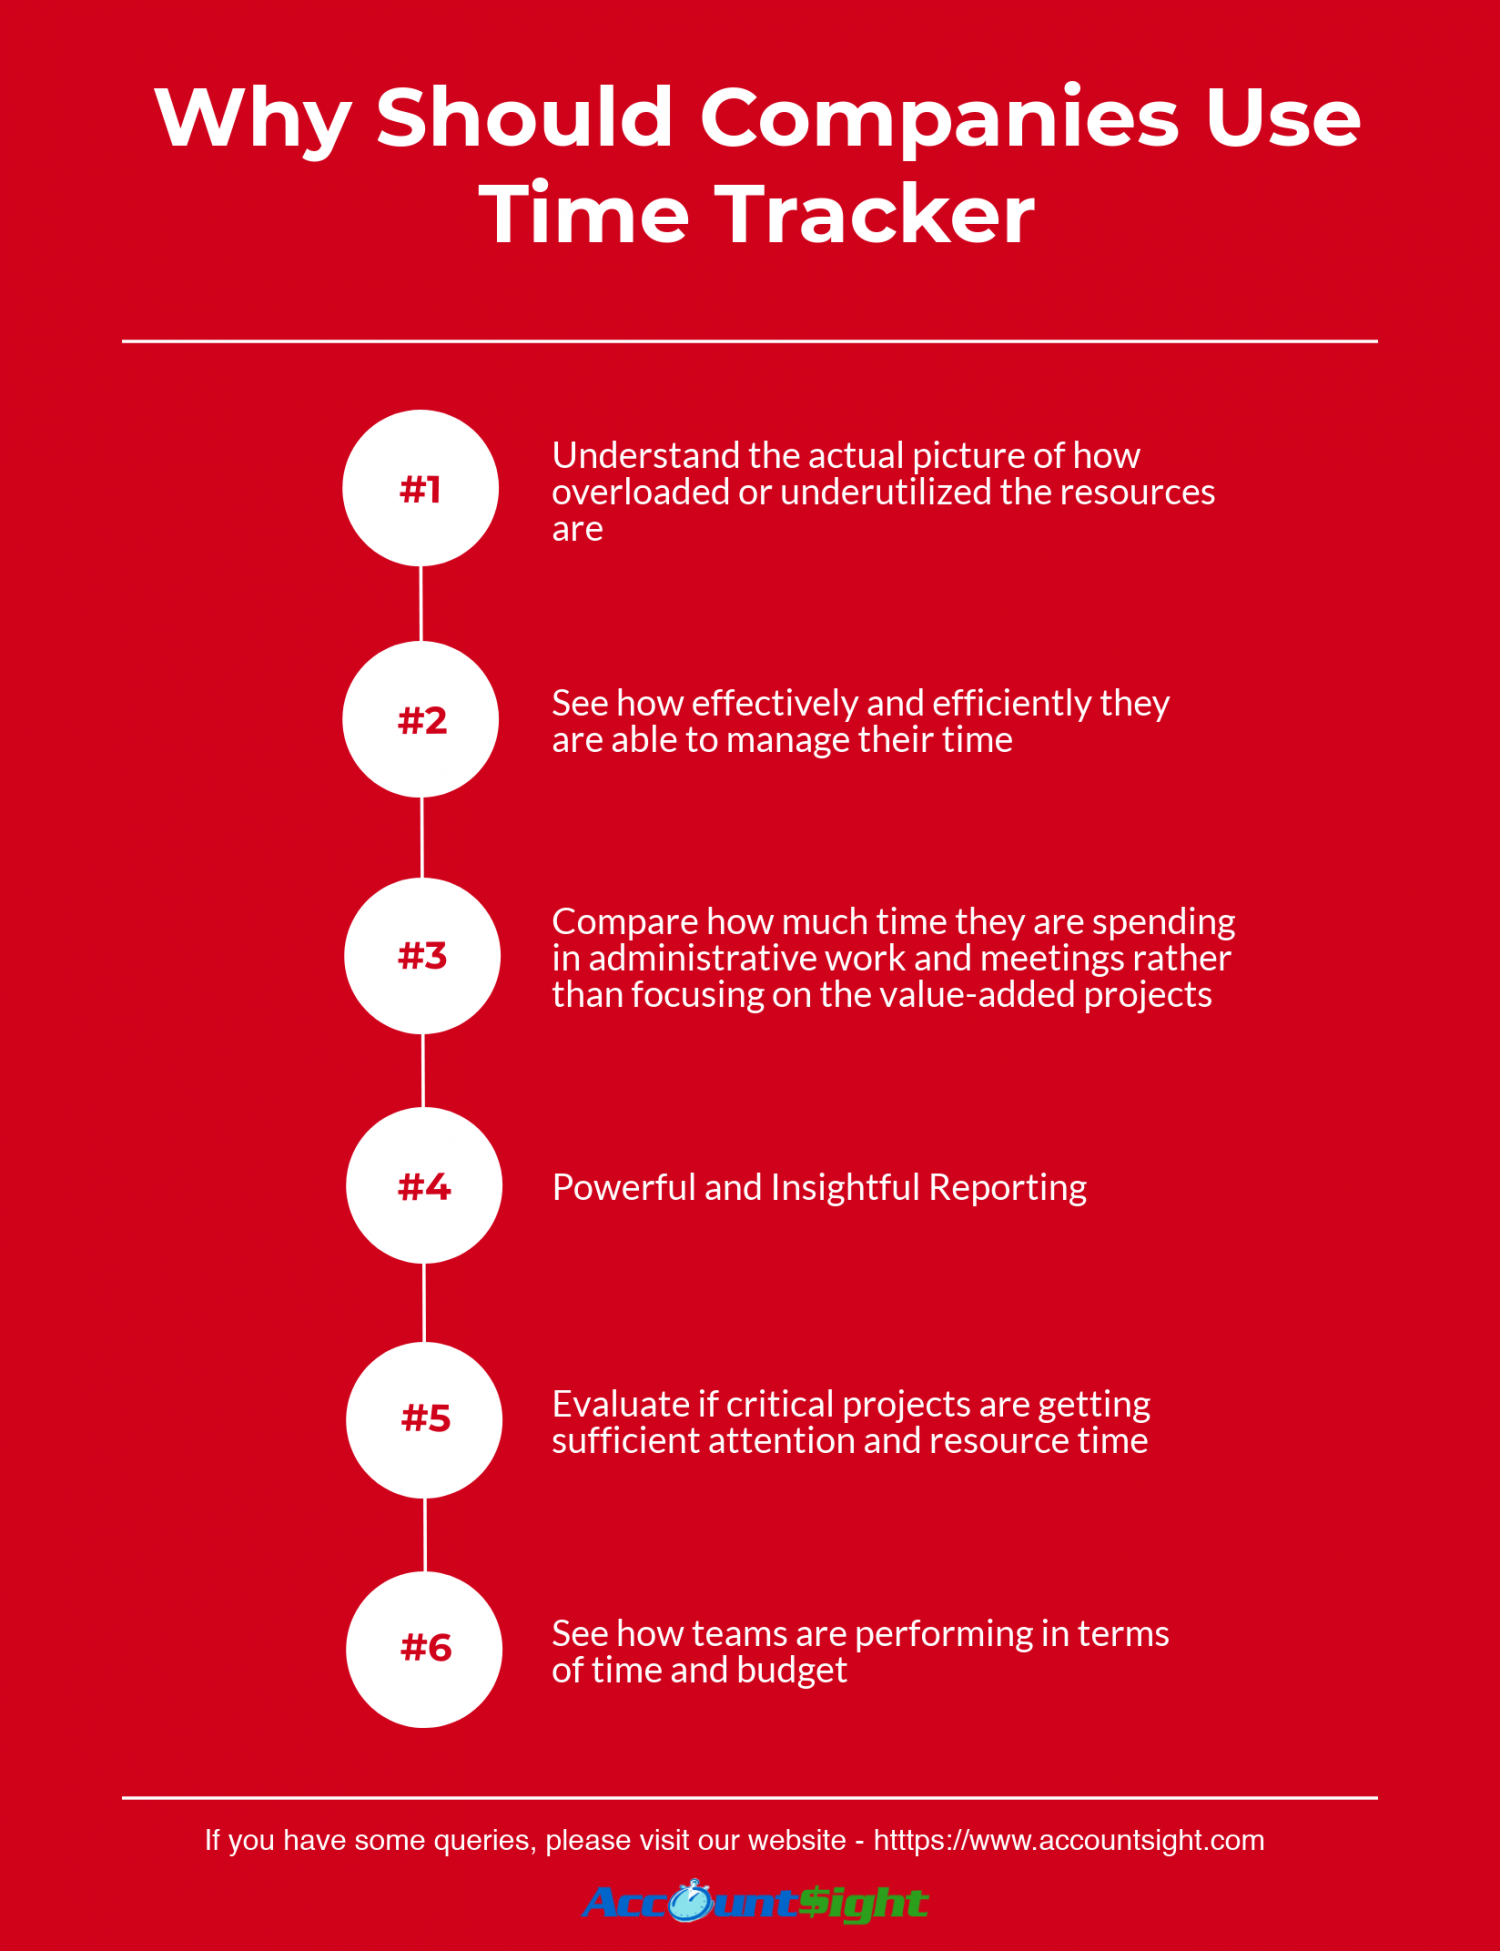 6 solid reasons for companies to use time tracker Infographic